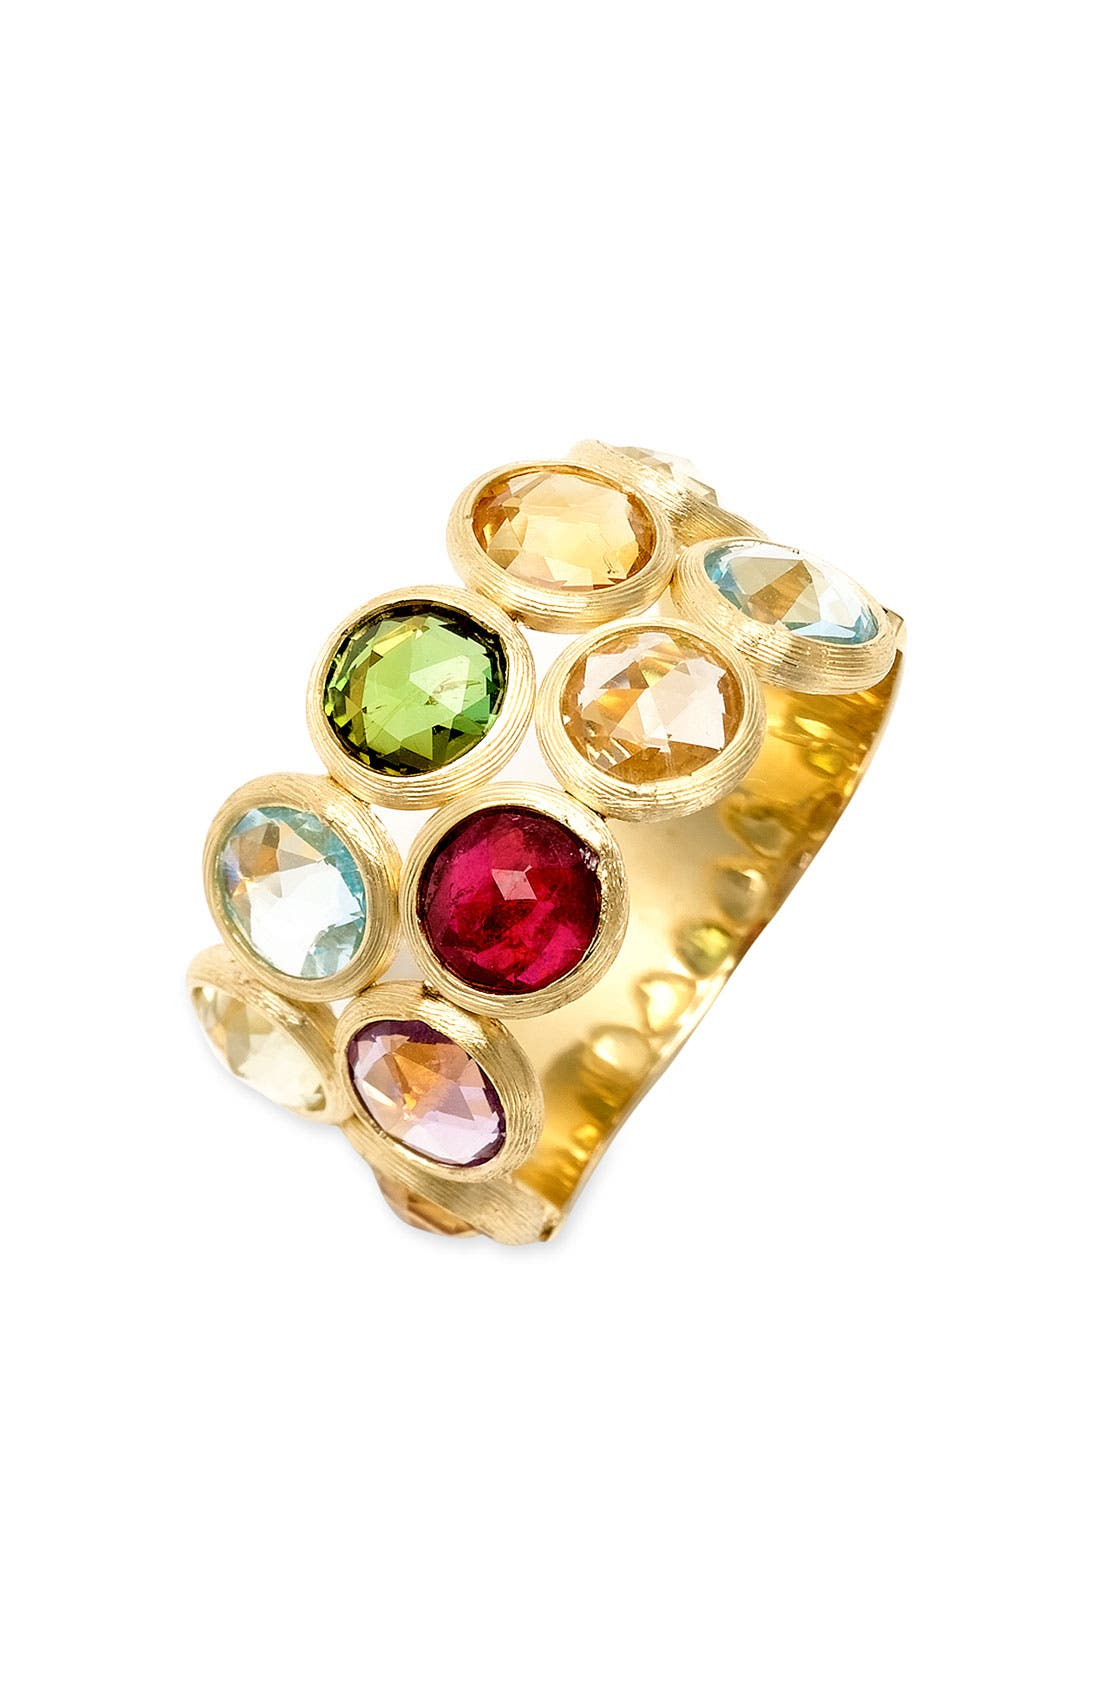 Alternate Image 1 Selected - Marco Bicego 'Mini Jaipur' Double Row Semiprecious Stone Ring